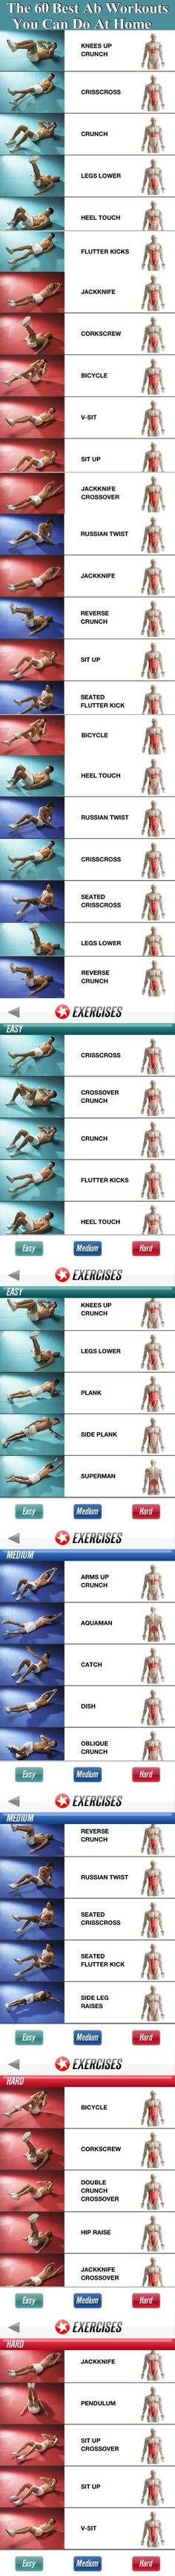 The 60 Best Ab Workouts You Can Do From Ho me Pictures, Photos, and Images for Facebook, Tumblr, Pinterest, and Twitter